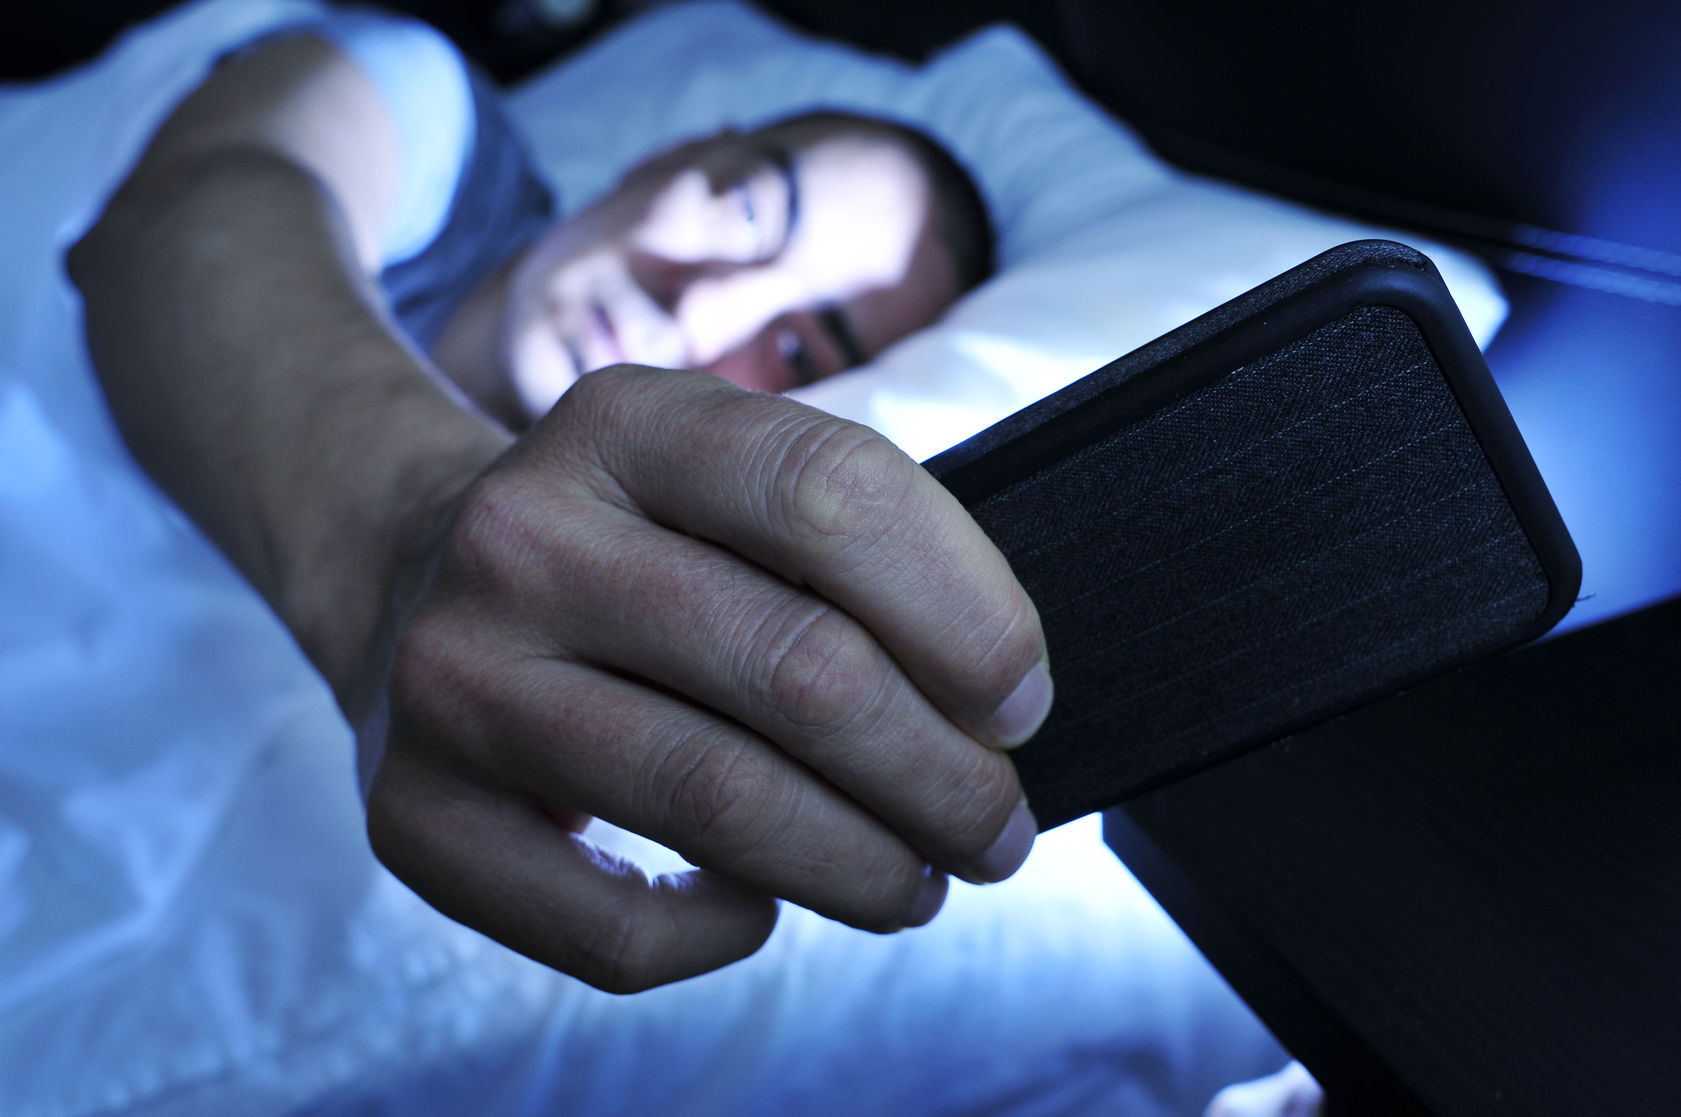 Closeup of a Young Man in Bed Looking at the Smartphone at Night Image